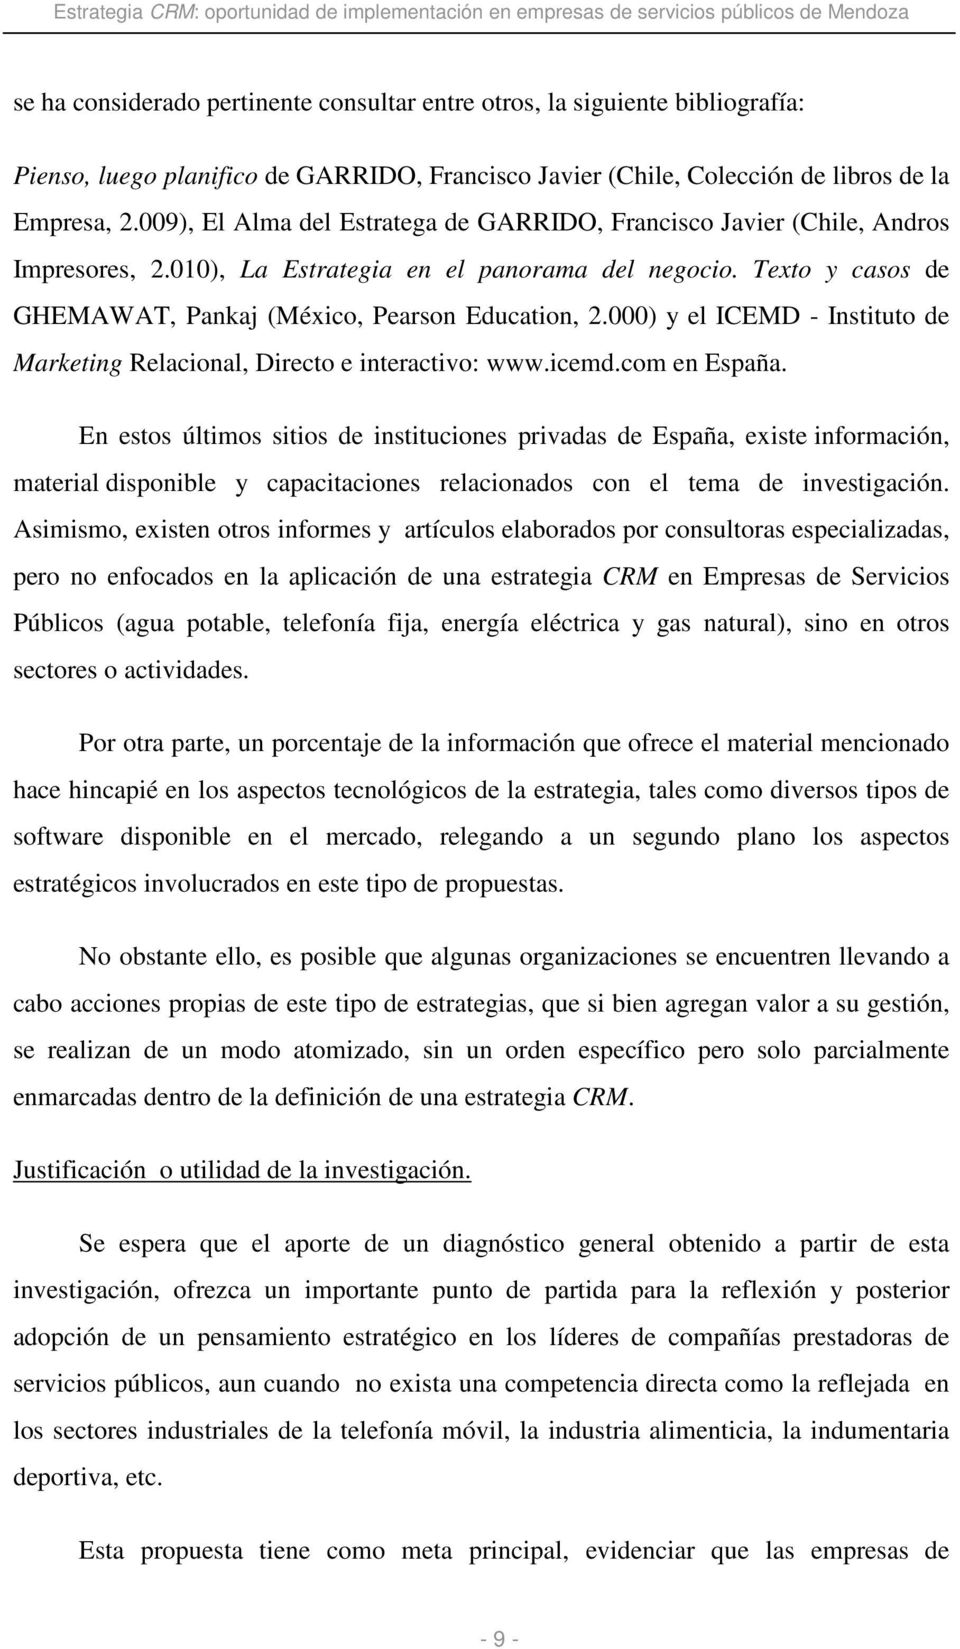 000) y el ICEMD - Instituto de Marketing Relacional, Directo e interactivo: www.icemd.com en España.